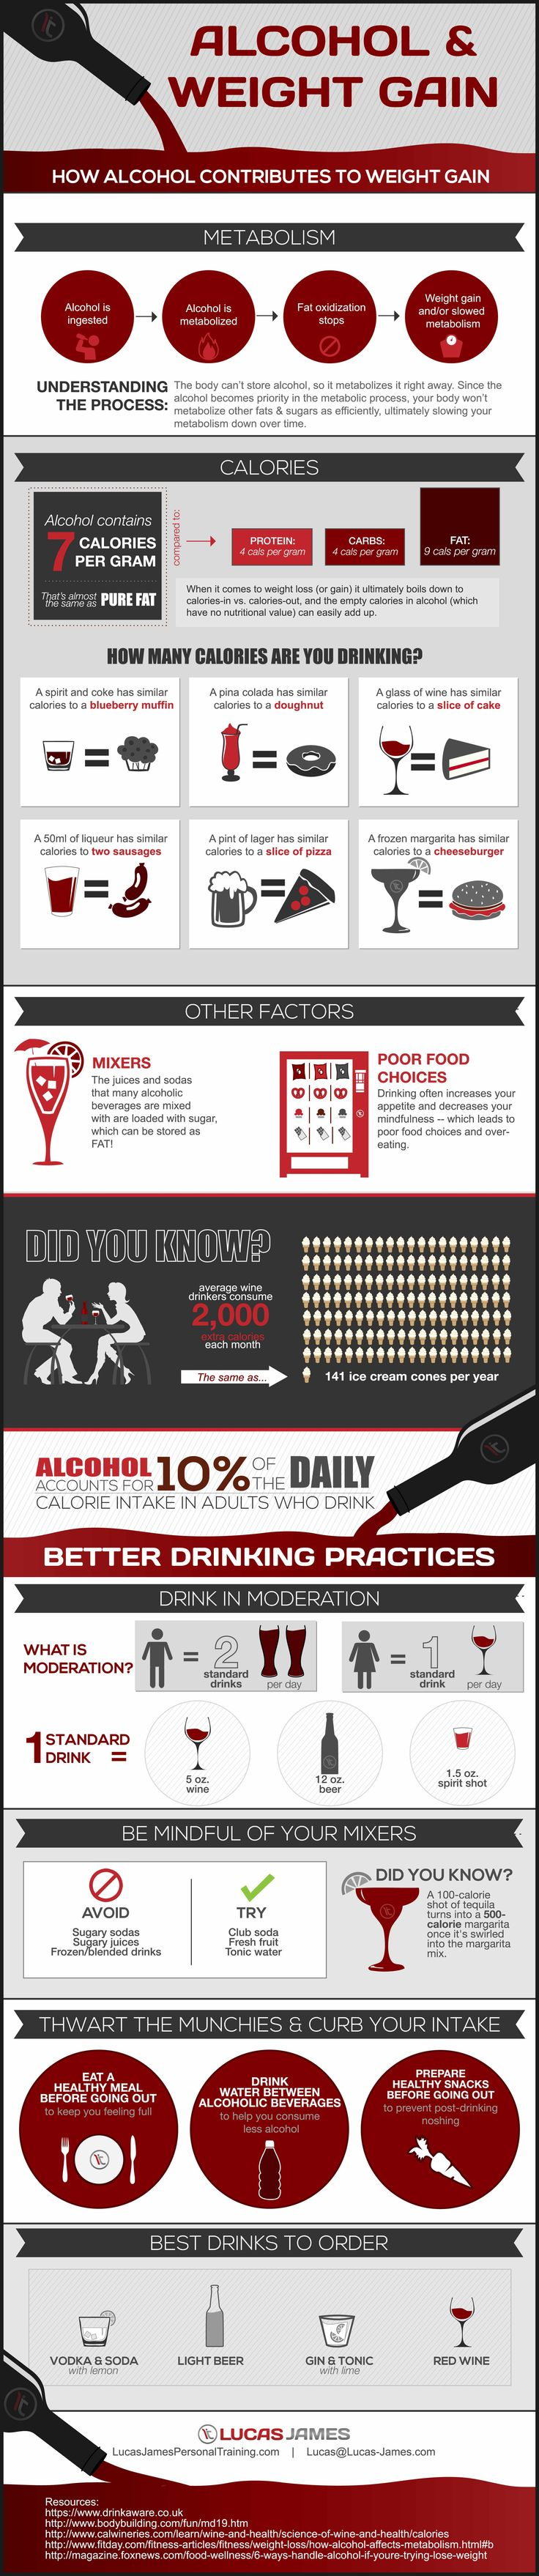 How Alcohol Contributes to Weight Gain - Do you fancy an infographic? There are a lot of them online, but if you want your own please visit http://www.linfografico.com/prezzi/ Online girano molte infografiche, se ne vuoi realizzare una tutta tua visita http://www.linfografico.com/prezzi/